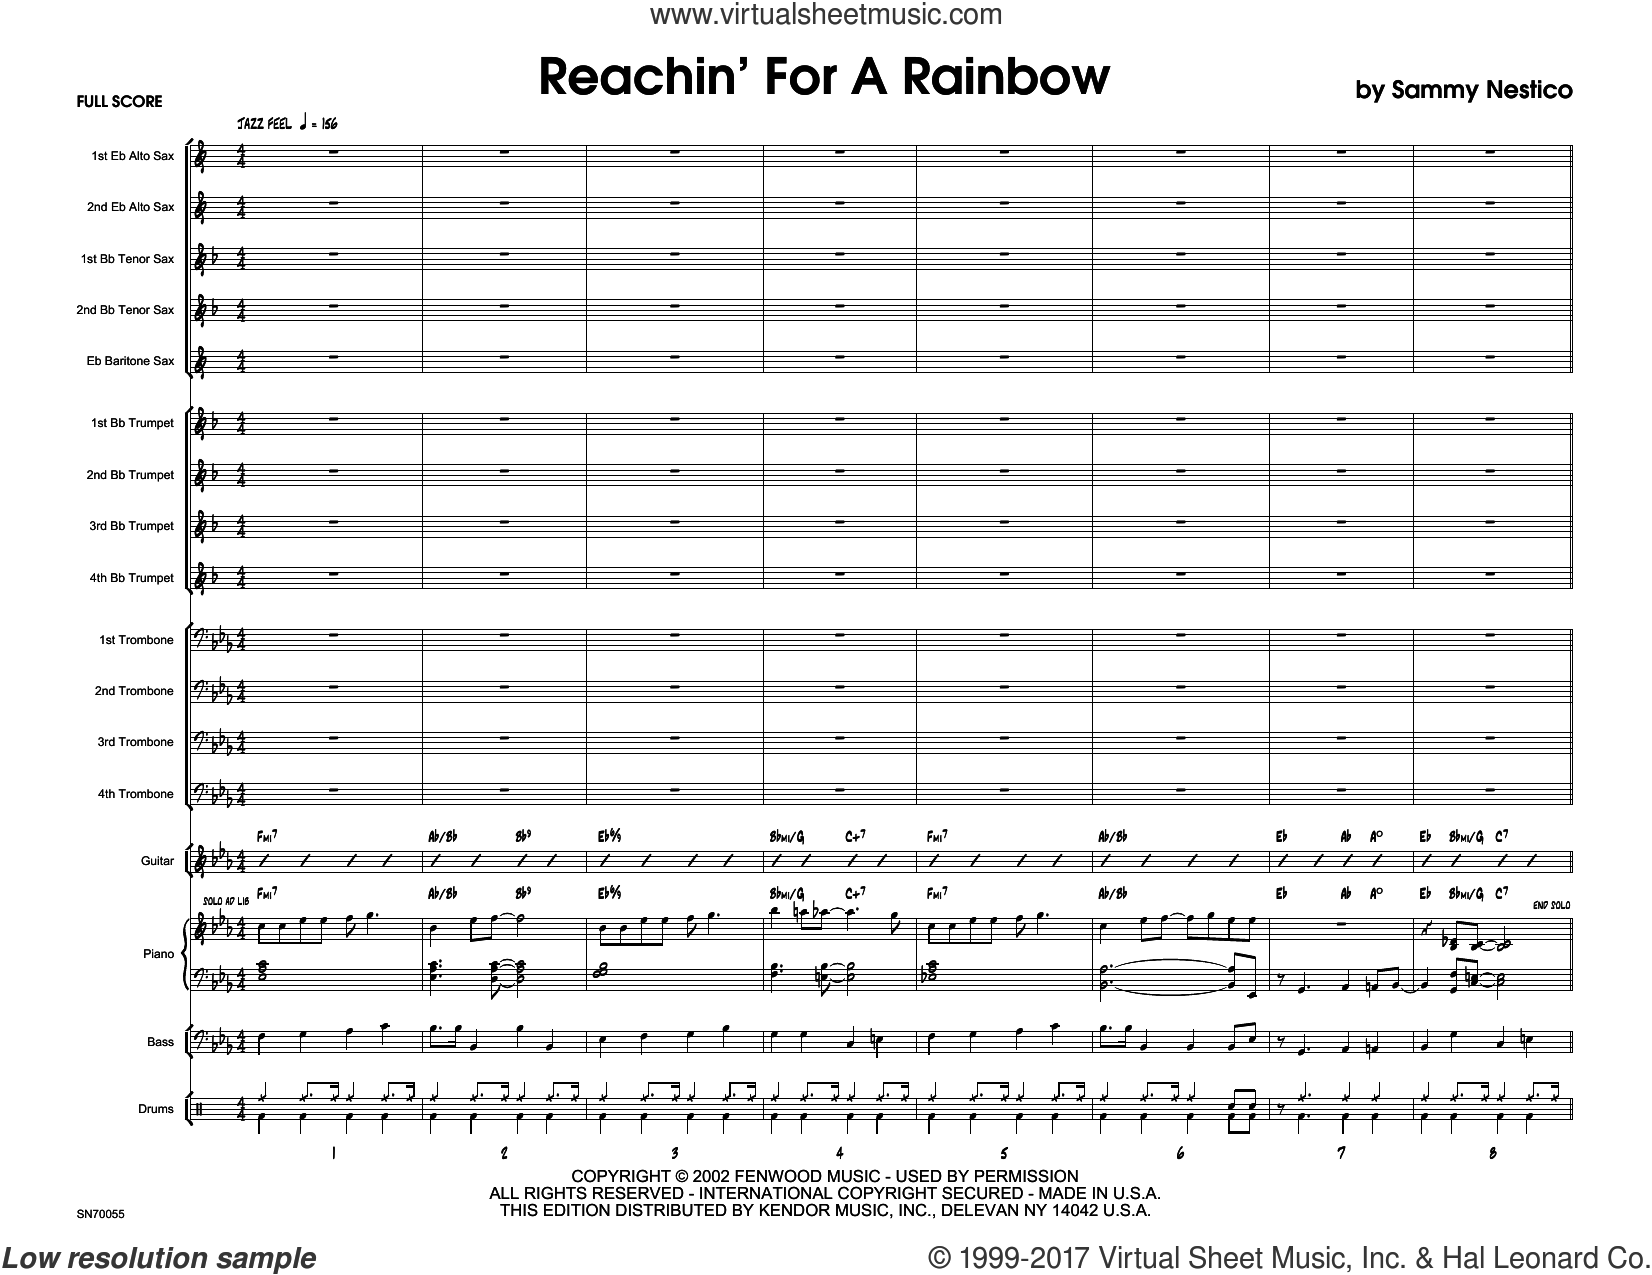 Reachin' For A Rainbow (COMPLETE) sheet music for jazz band by Sammy Nestico, intermediate skill level